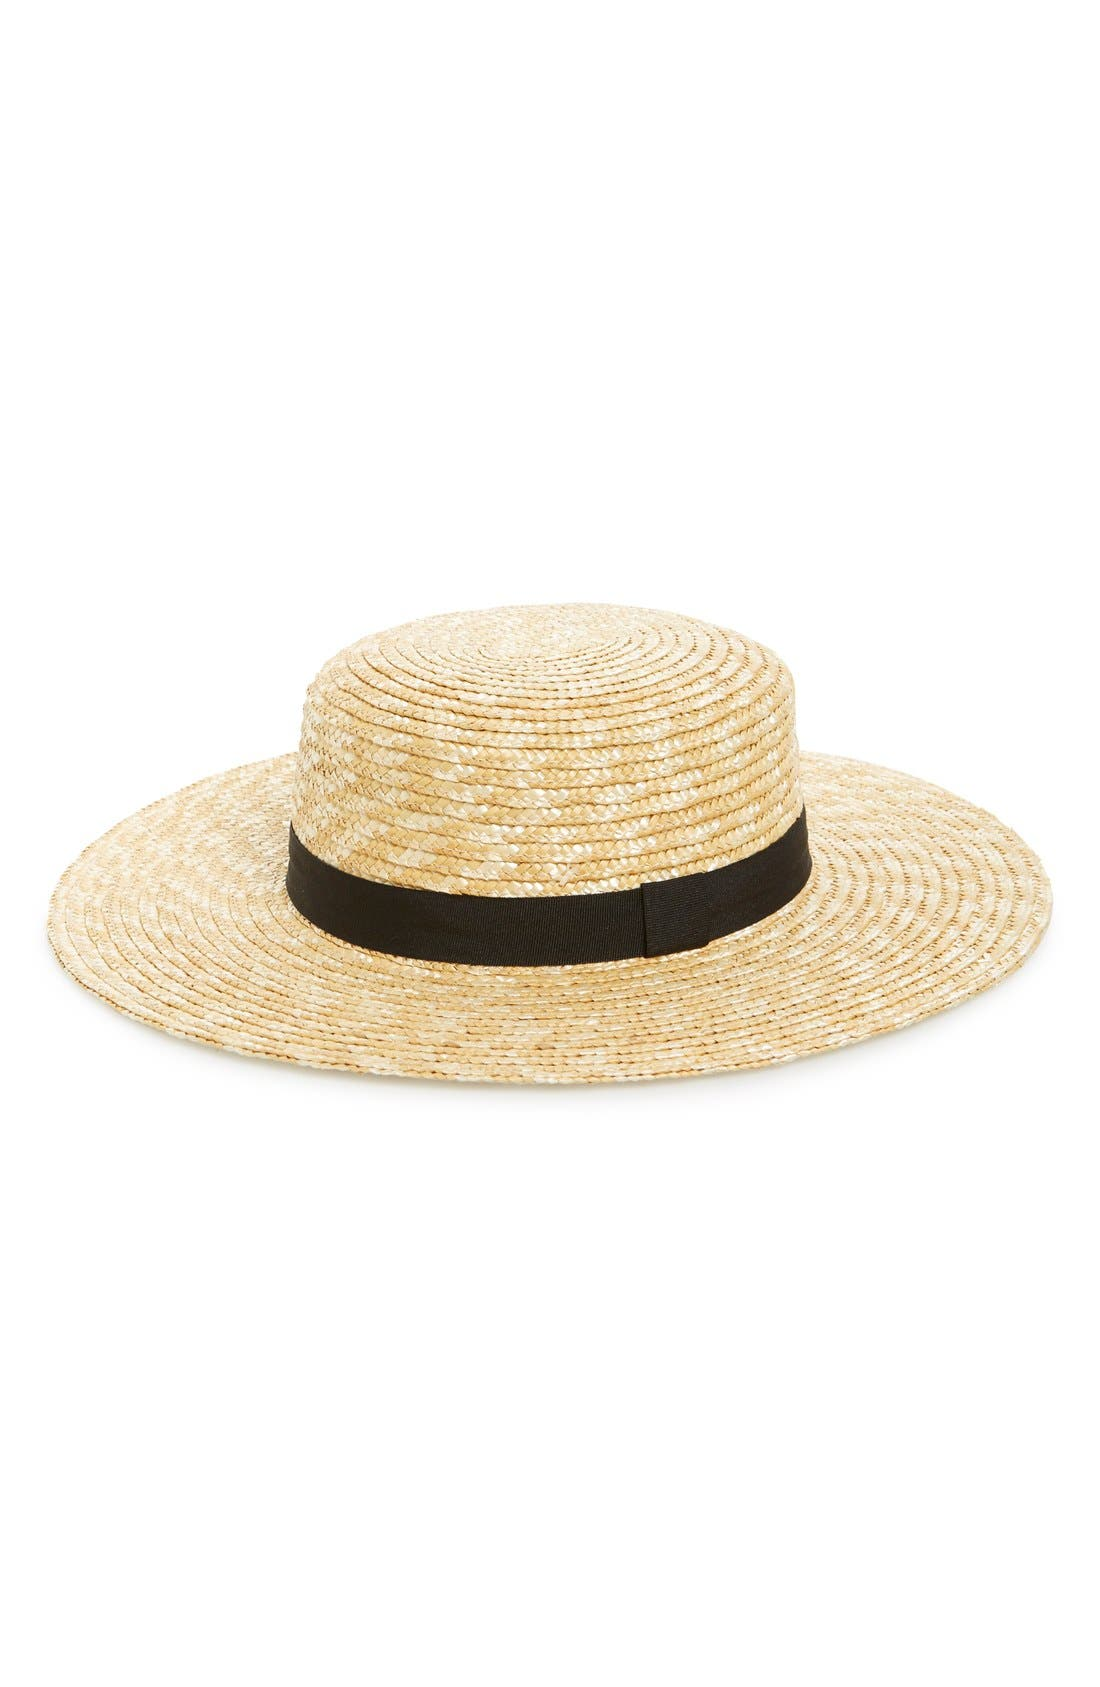 Straw Boater Hat,                             Main thumbnail 1, color,